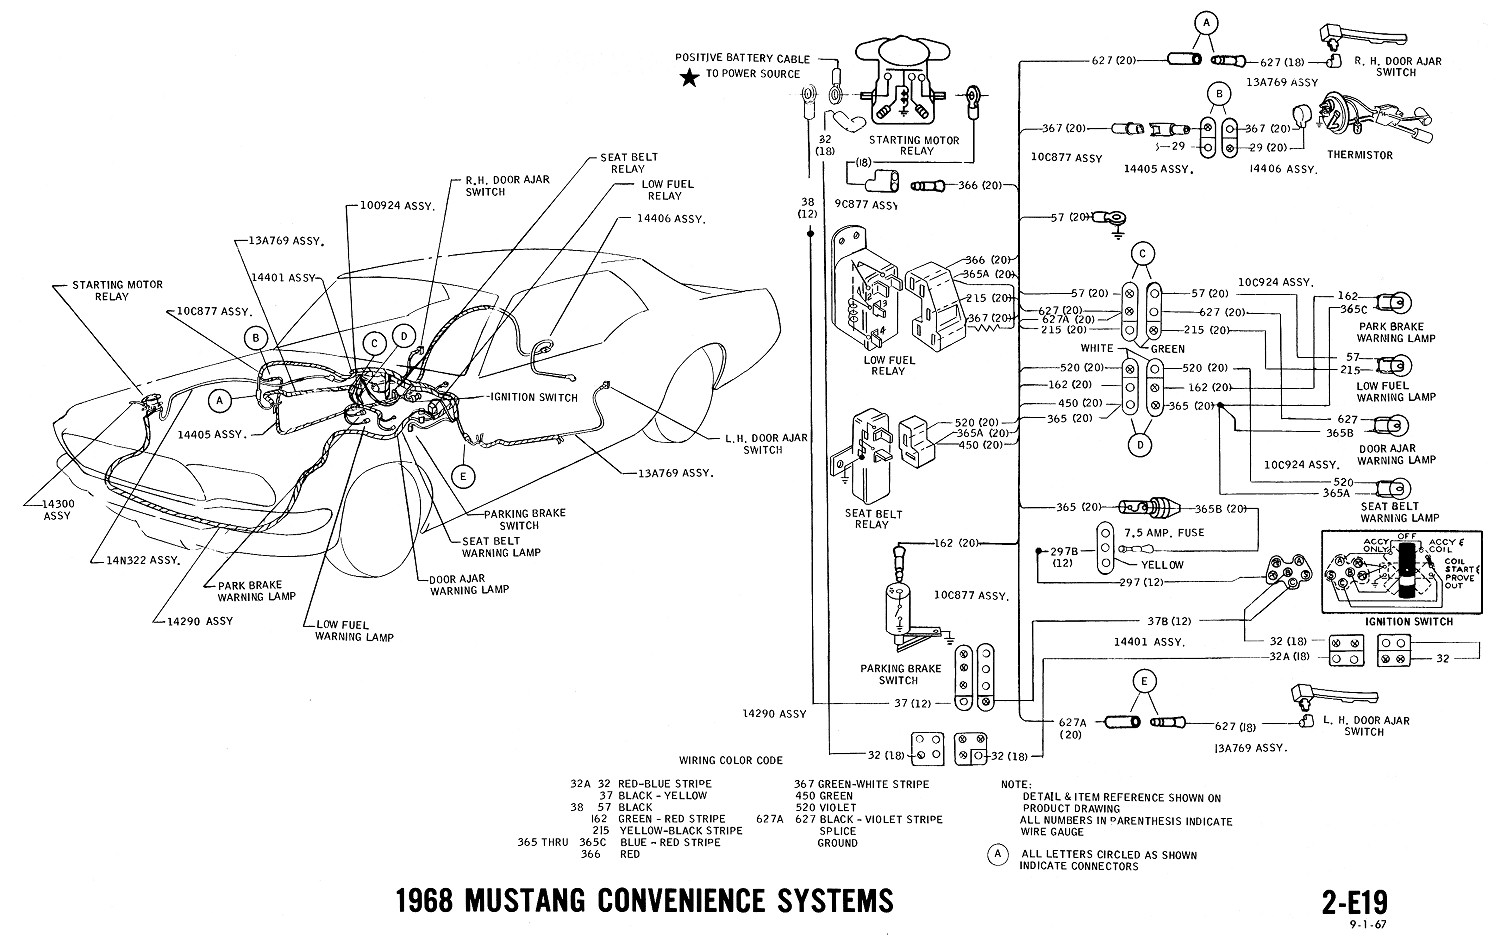 E19 1968 mustang wiring diagrams evolving software Multi Speed Blower Motor Wiring at readyjetset.co